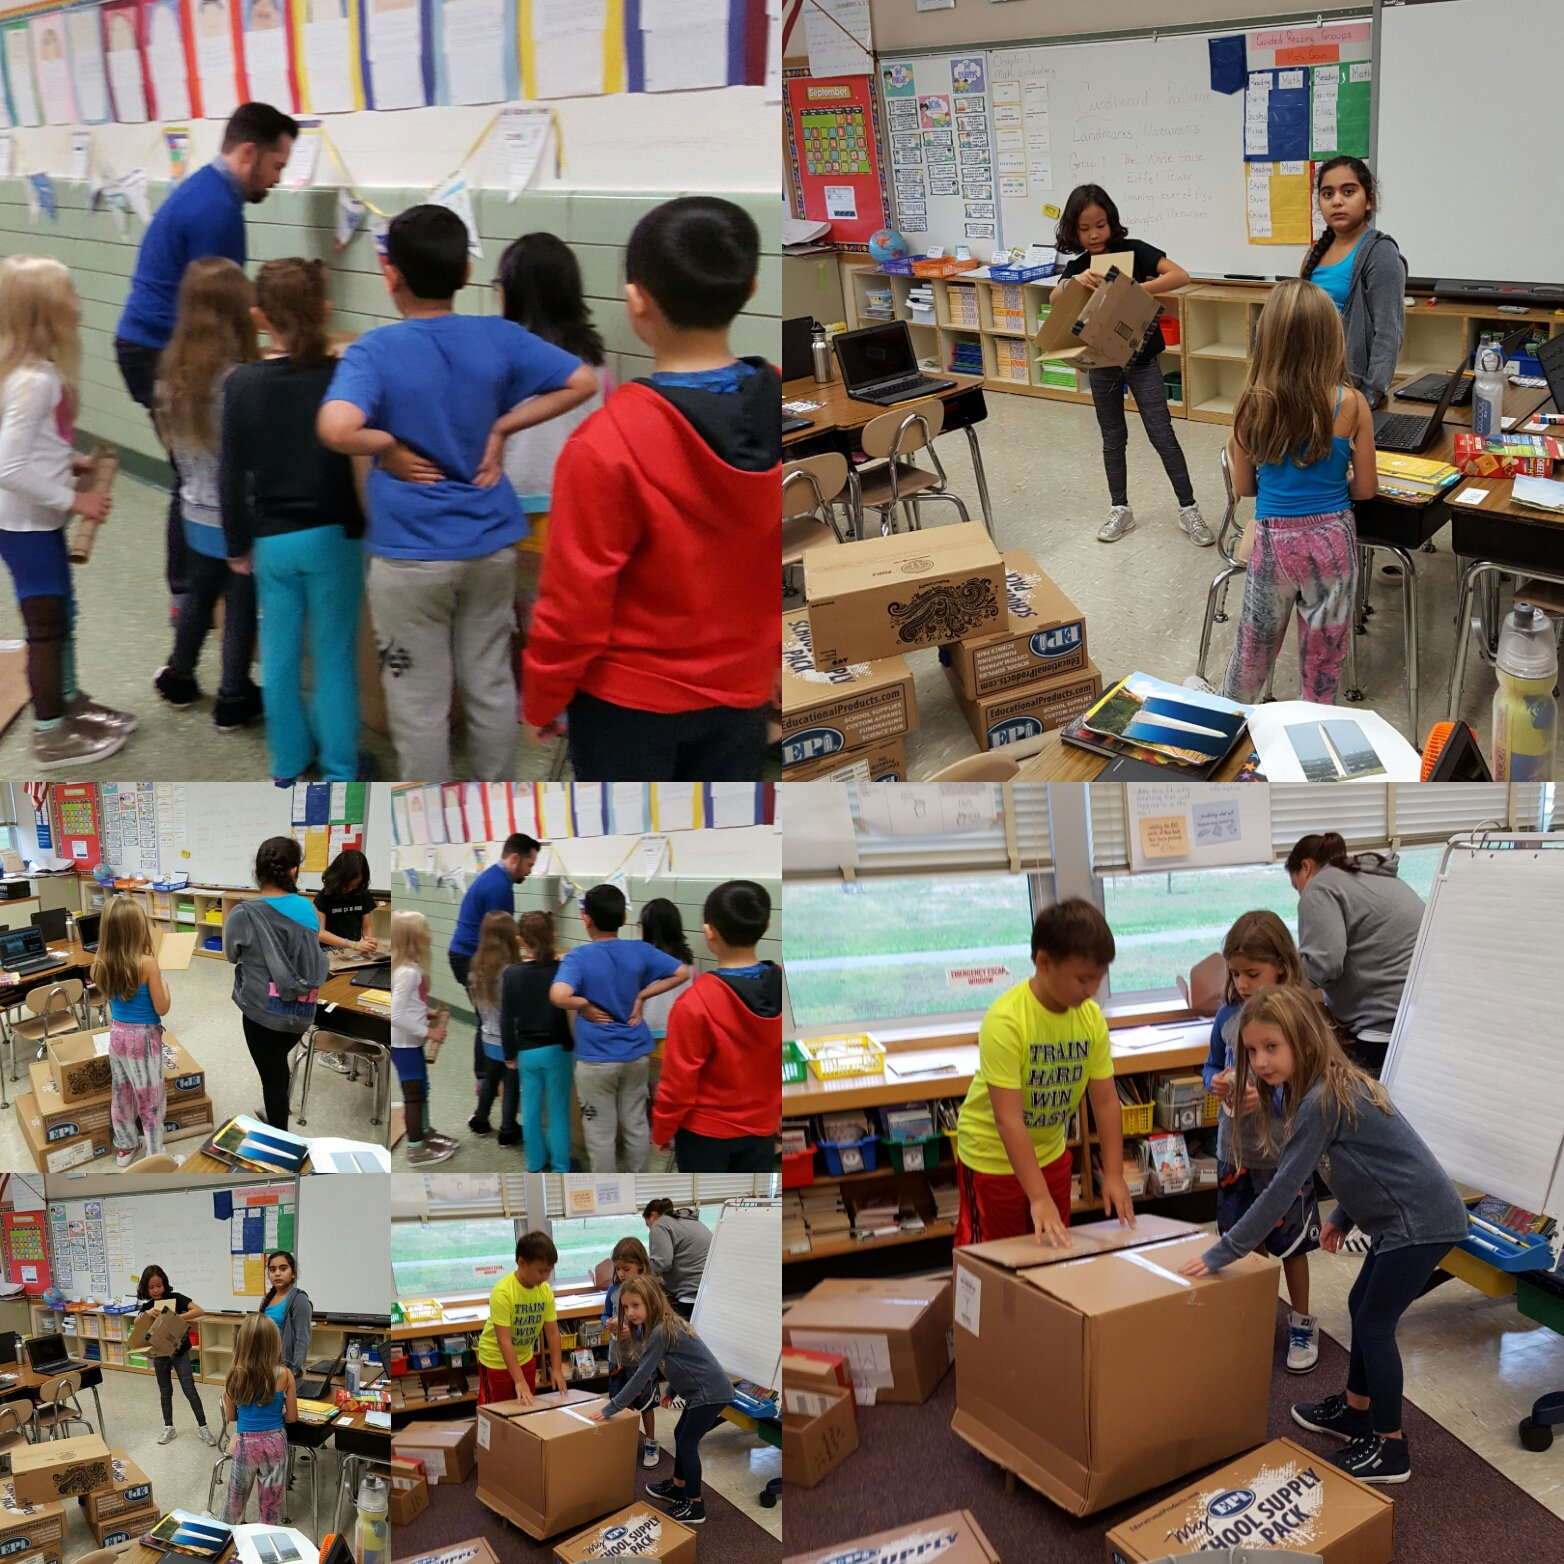 Hard at work #cardboardchallenge #seamanstrength @Ivysherman https://t.co/VAlSr8xH8V